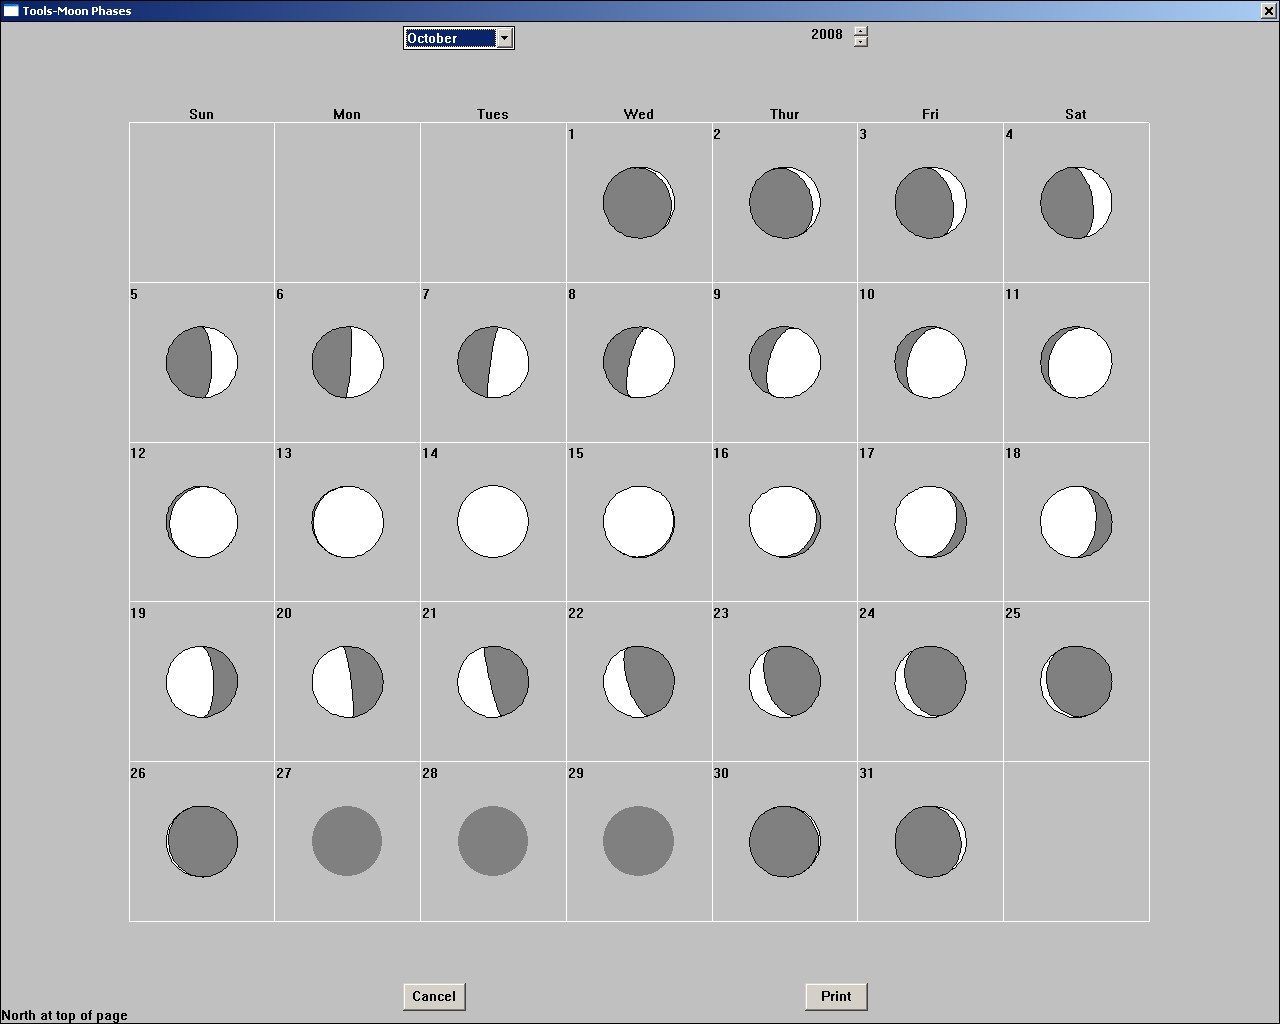 Moon Phases 2008 – Phases of the Moon Printable Worksheets